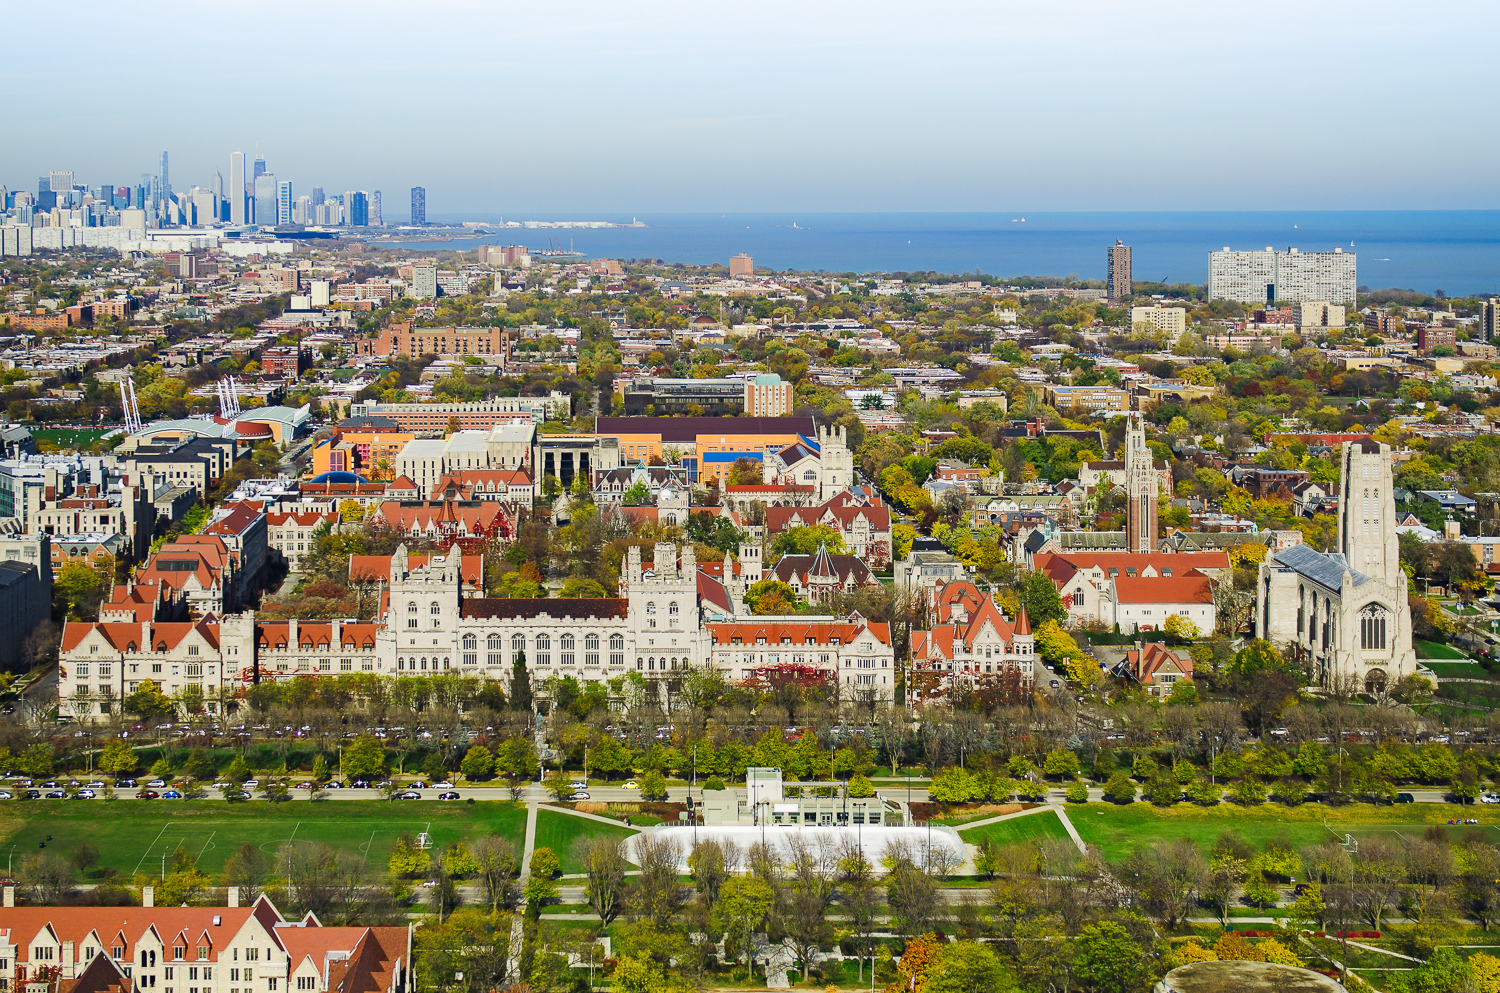 Image Title:  University of Chicago - Aerial   Mat Sizes:  8x10, 11x14, 16x20   Float Mount Sizes:  12x18, 16x24, 20x30, 24x36, 28x42, 32x48, 36x54, 40x60